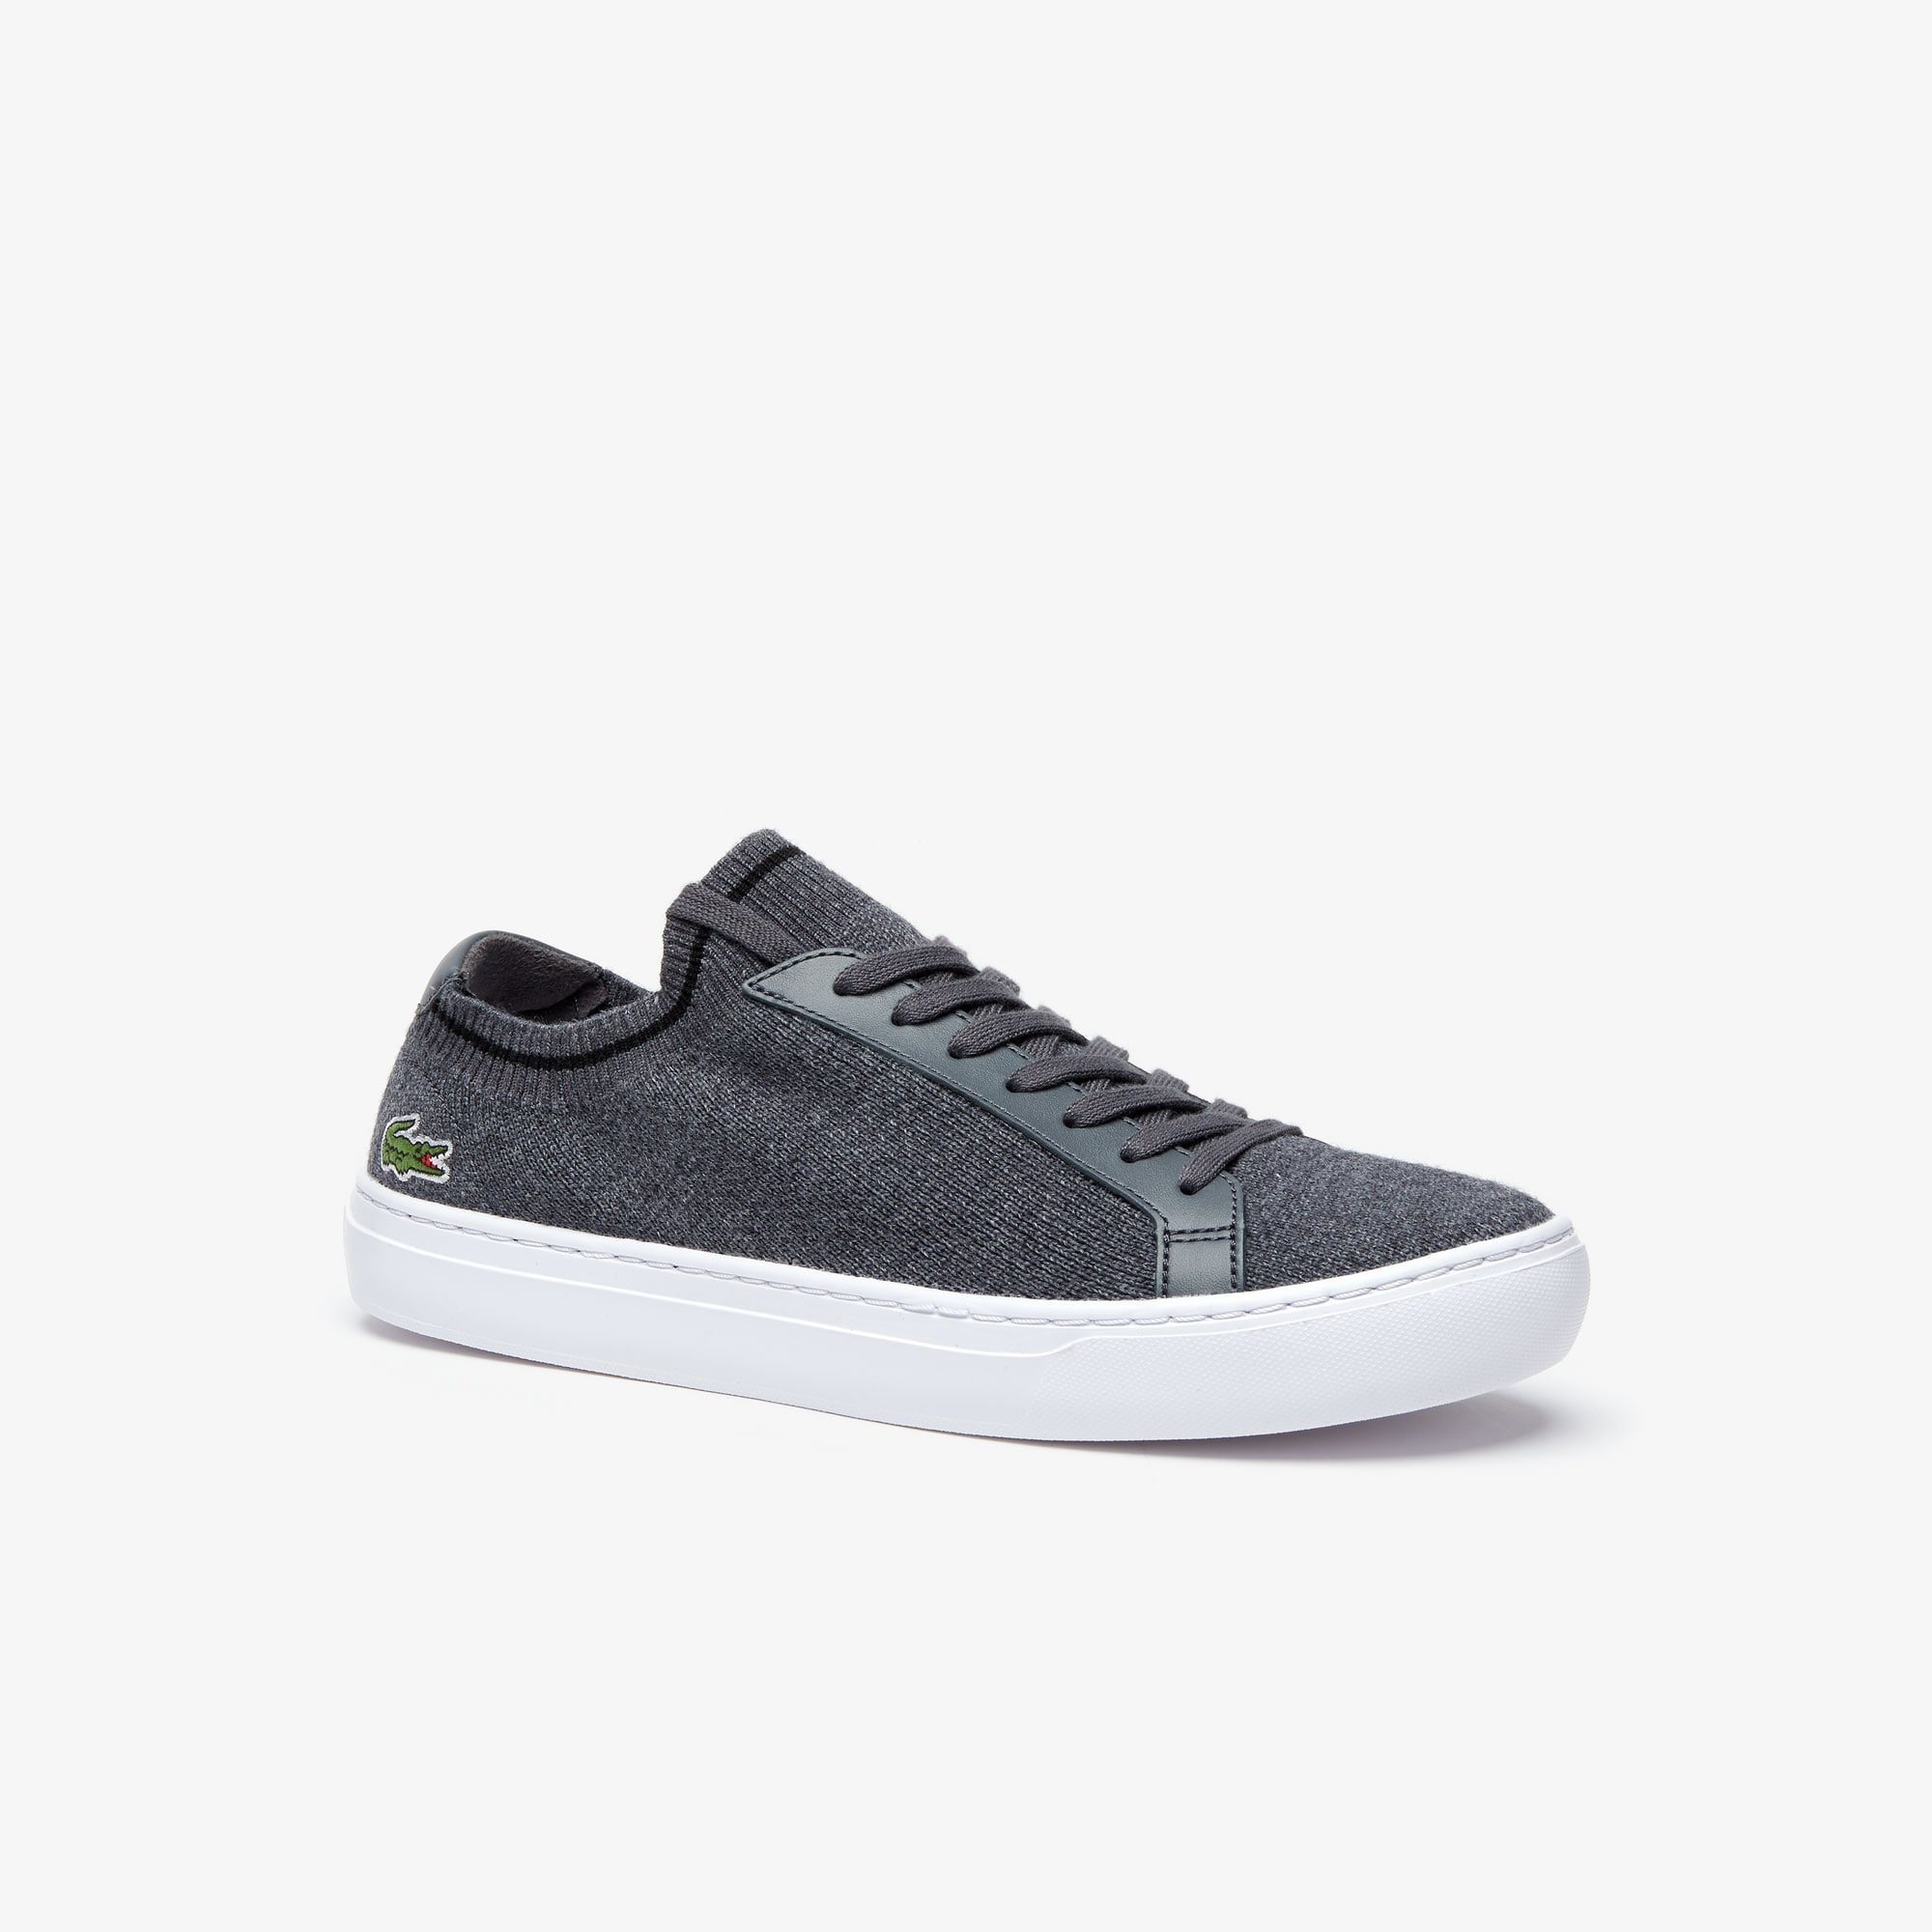 Lacoste Lacoste HommeCollection Chaussures Chaussures Chaussures HommeCollection W9YHED2I